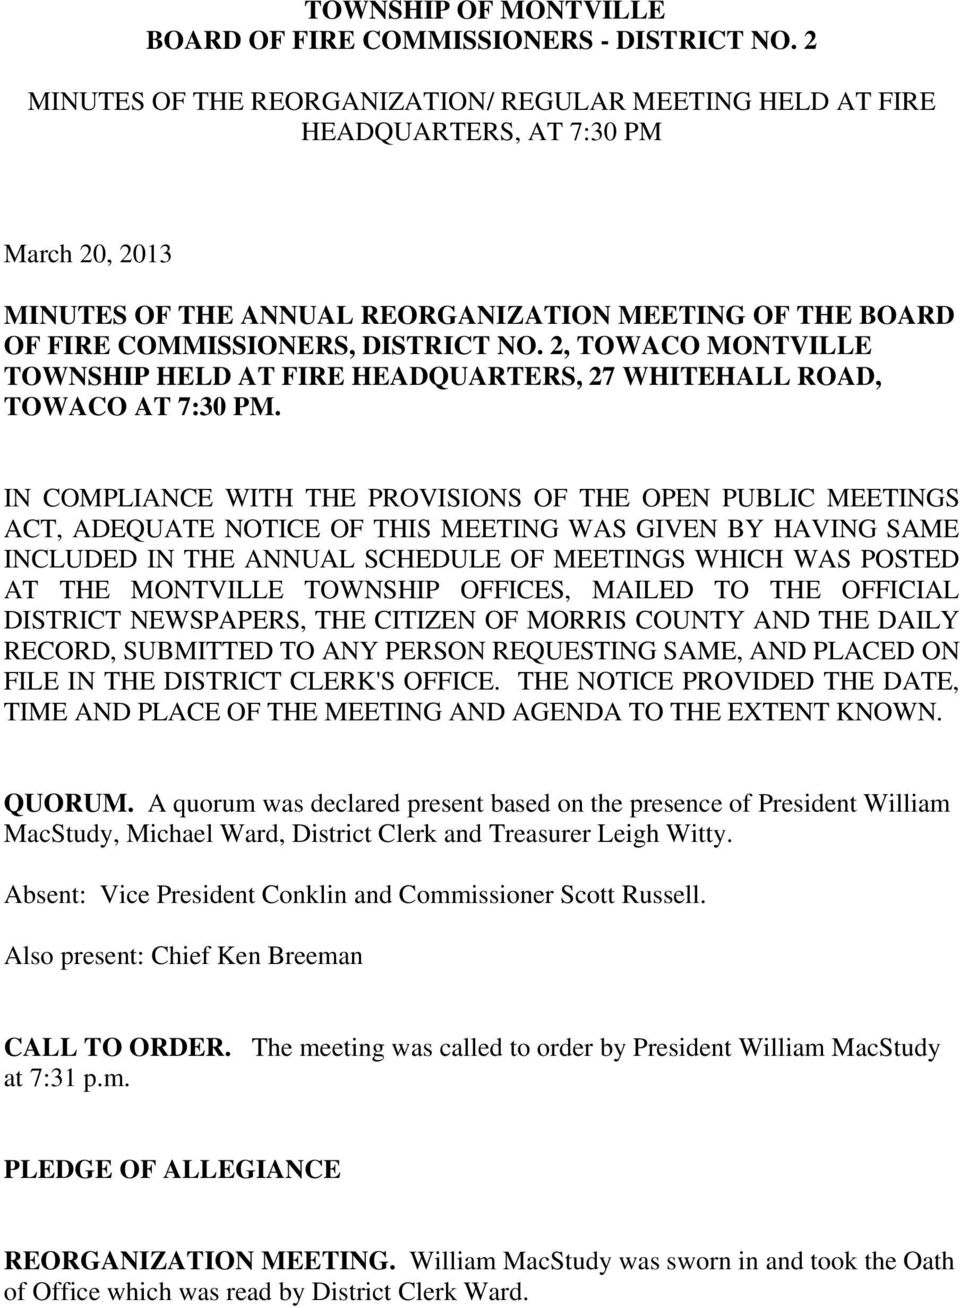 TOWNSHIP OF MONTVILLE BOARD OF FIRE COMMISSIONERS - DISTRICT